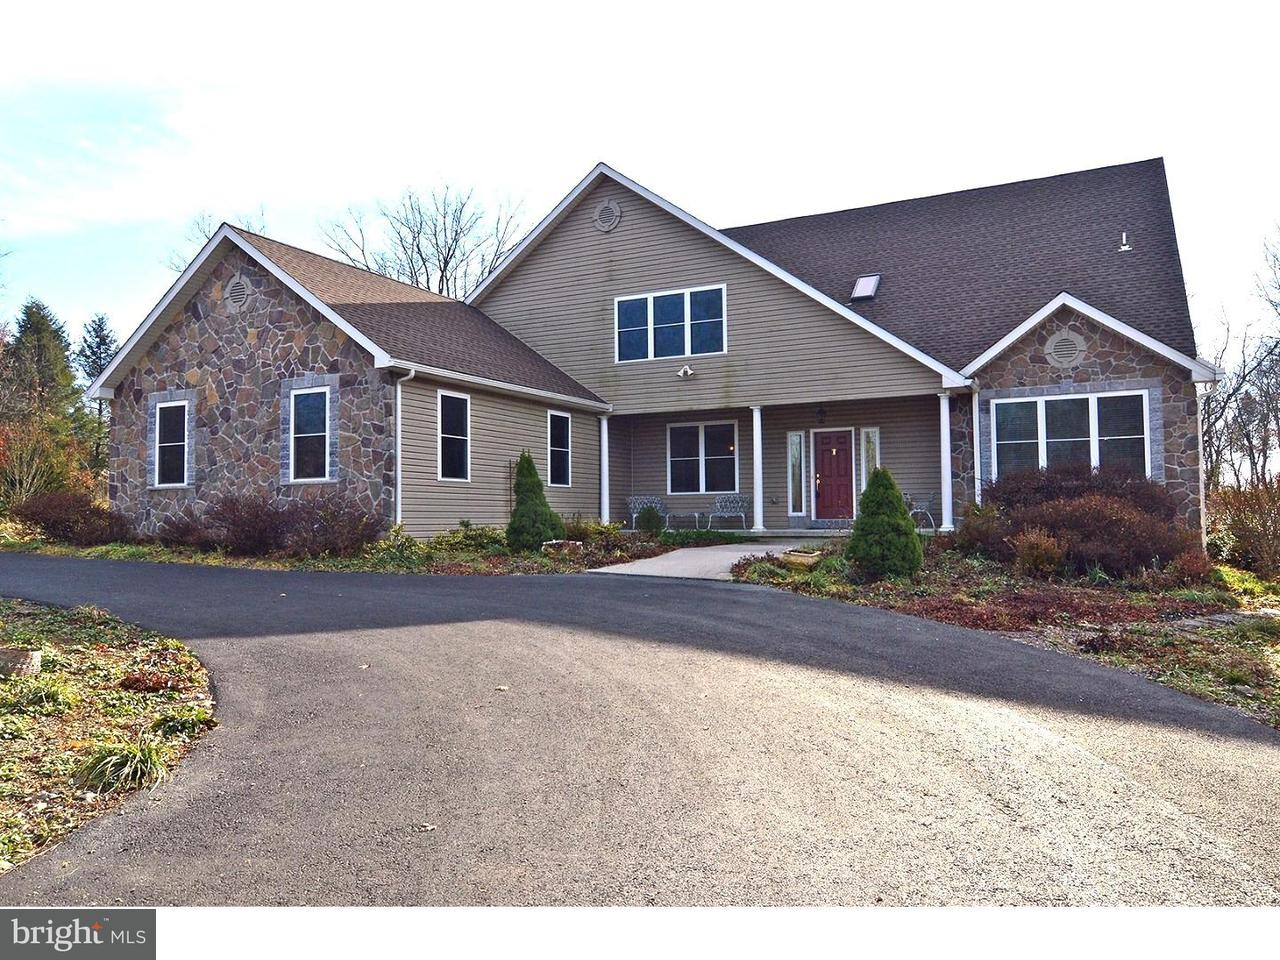 Single Family Home for Sale at 547 SCENIC Drive Bernville, Pennsylvania 19506 United States